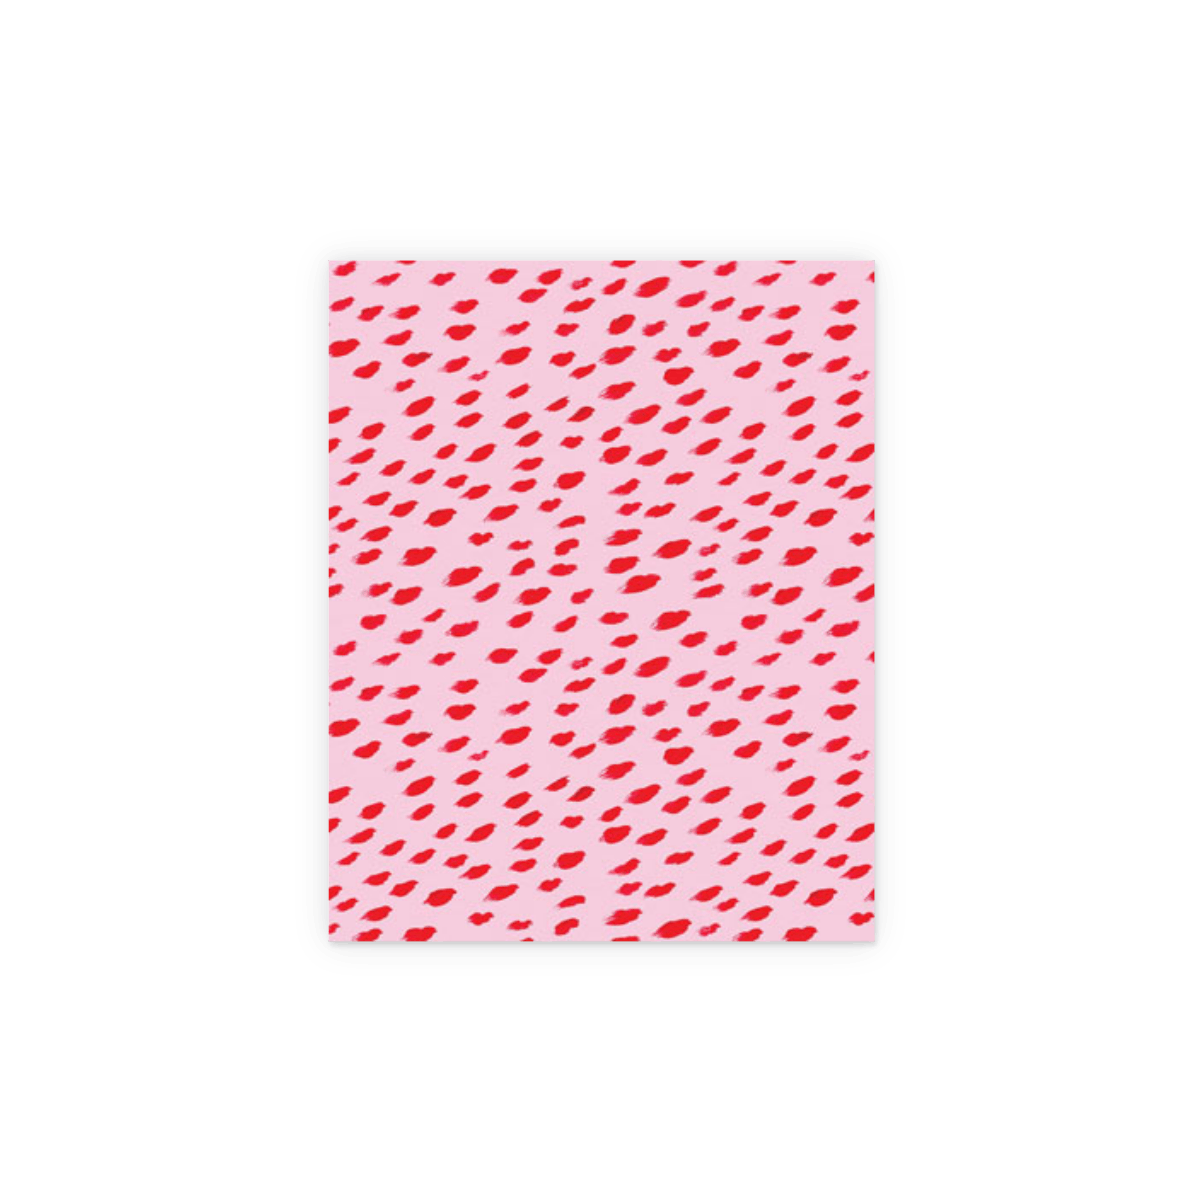 Https%3a%2f%2fwww.papier.com%2fproduct image%2f5225%2f9%2fludo pink 1360 infokarte ruckseite 1458651814.png?ixlib=rb 1.1